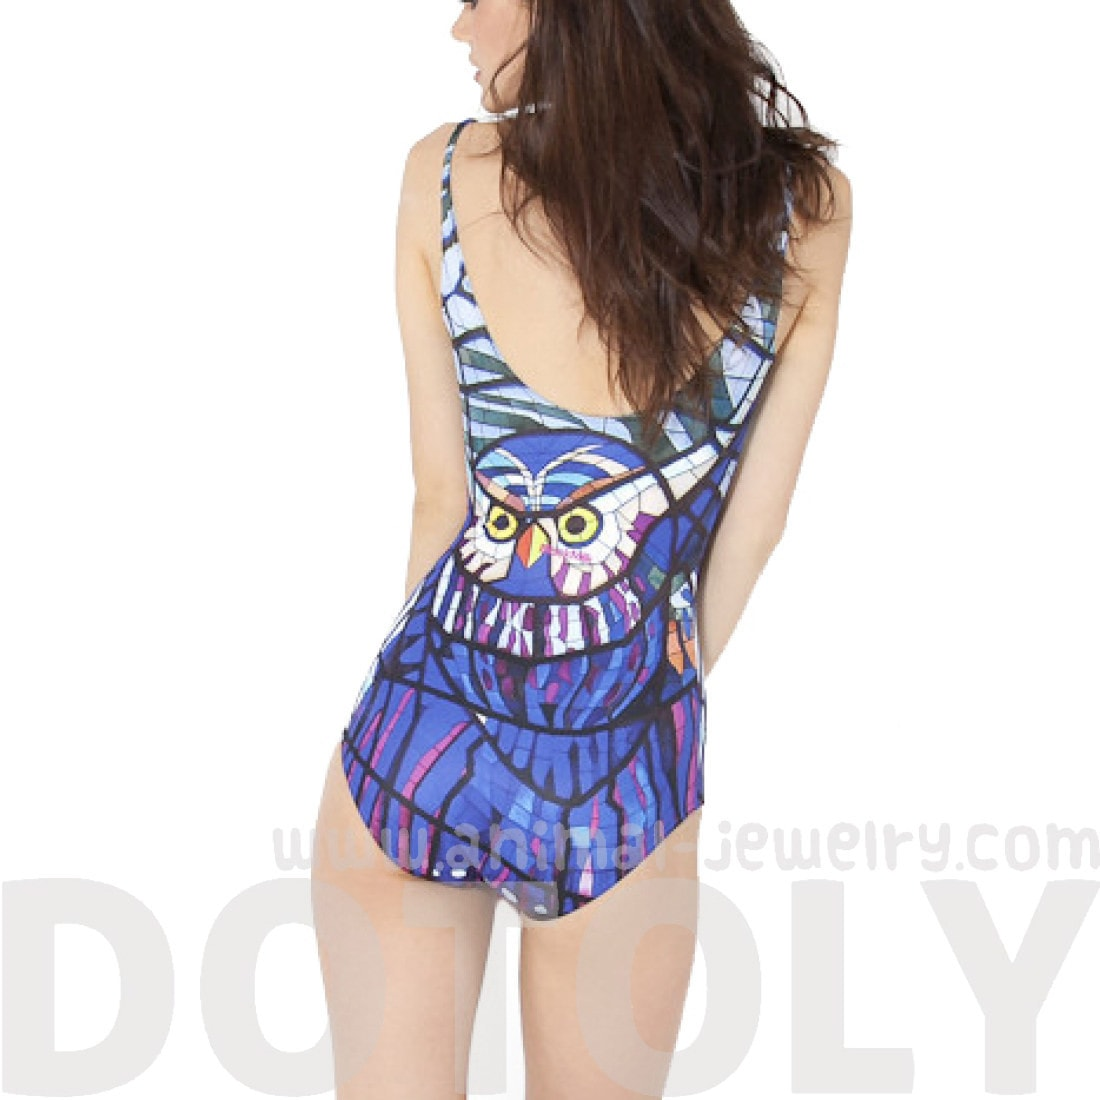 owl-stained-glass-animal-digital-print-scoop-neck-sleeveless-bodysuit-for-women-in-blue